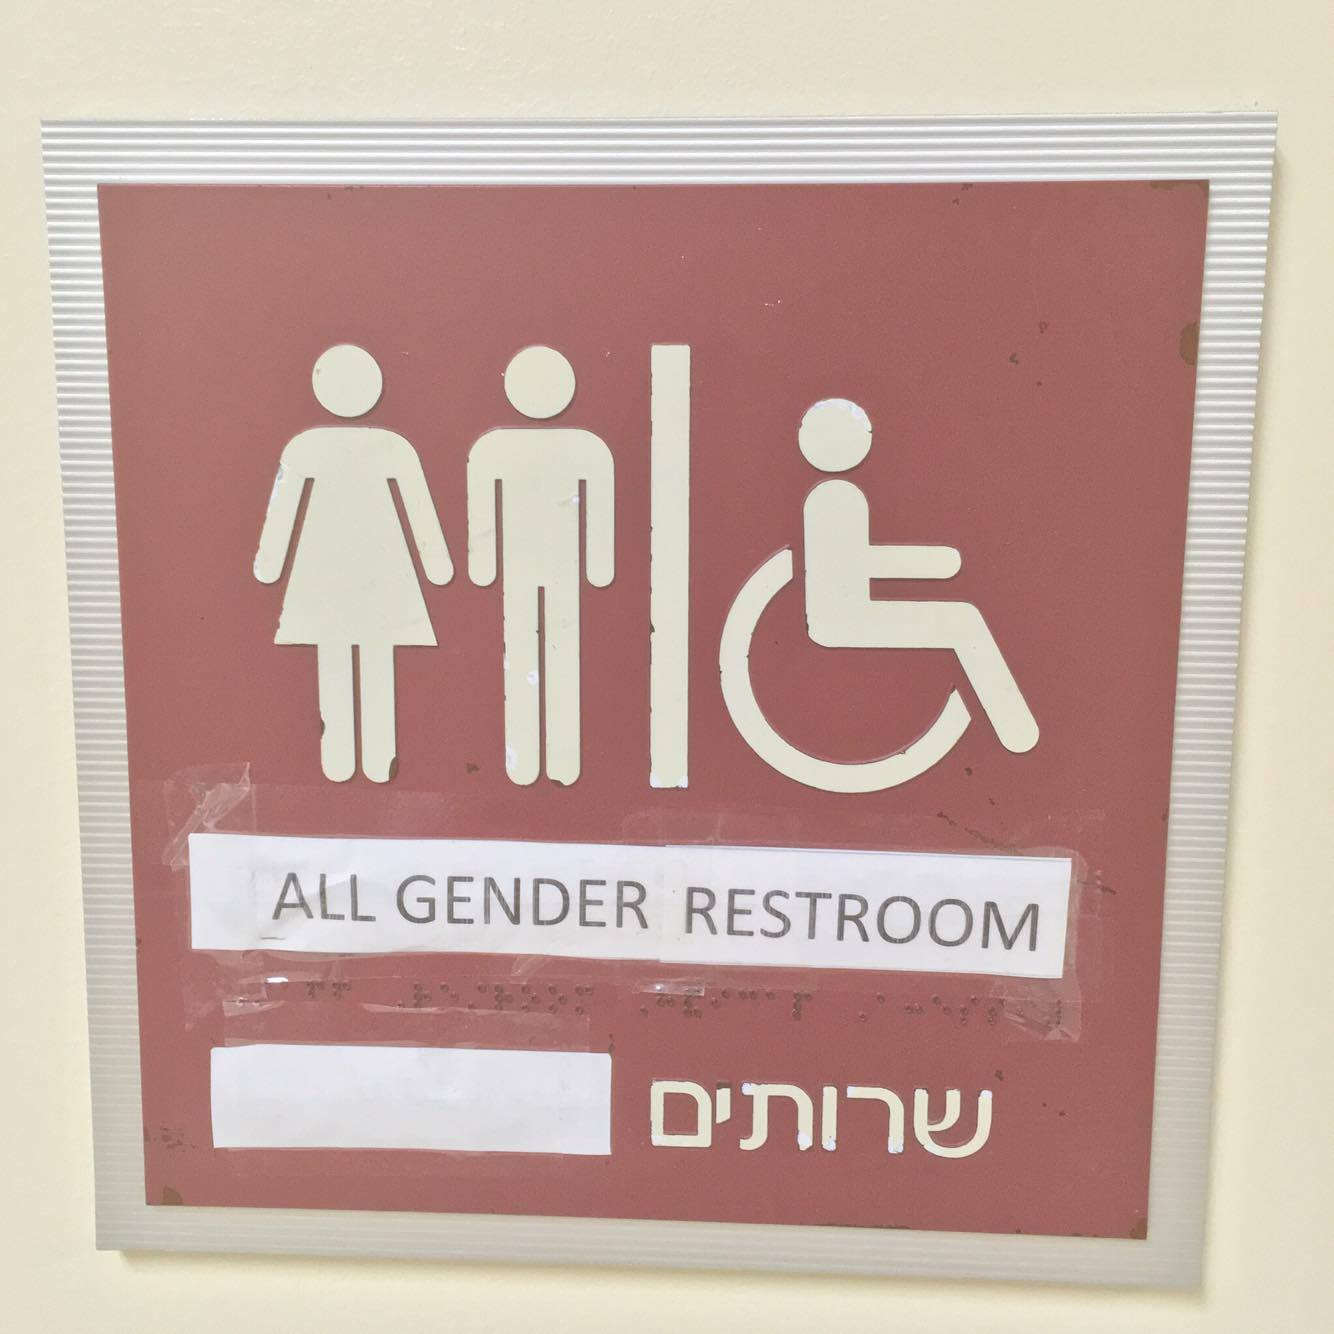 Gender-neutral bathroom located in the sophomore hallway.